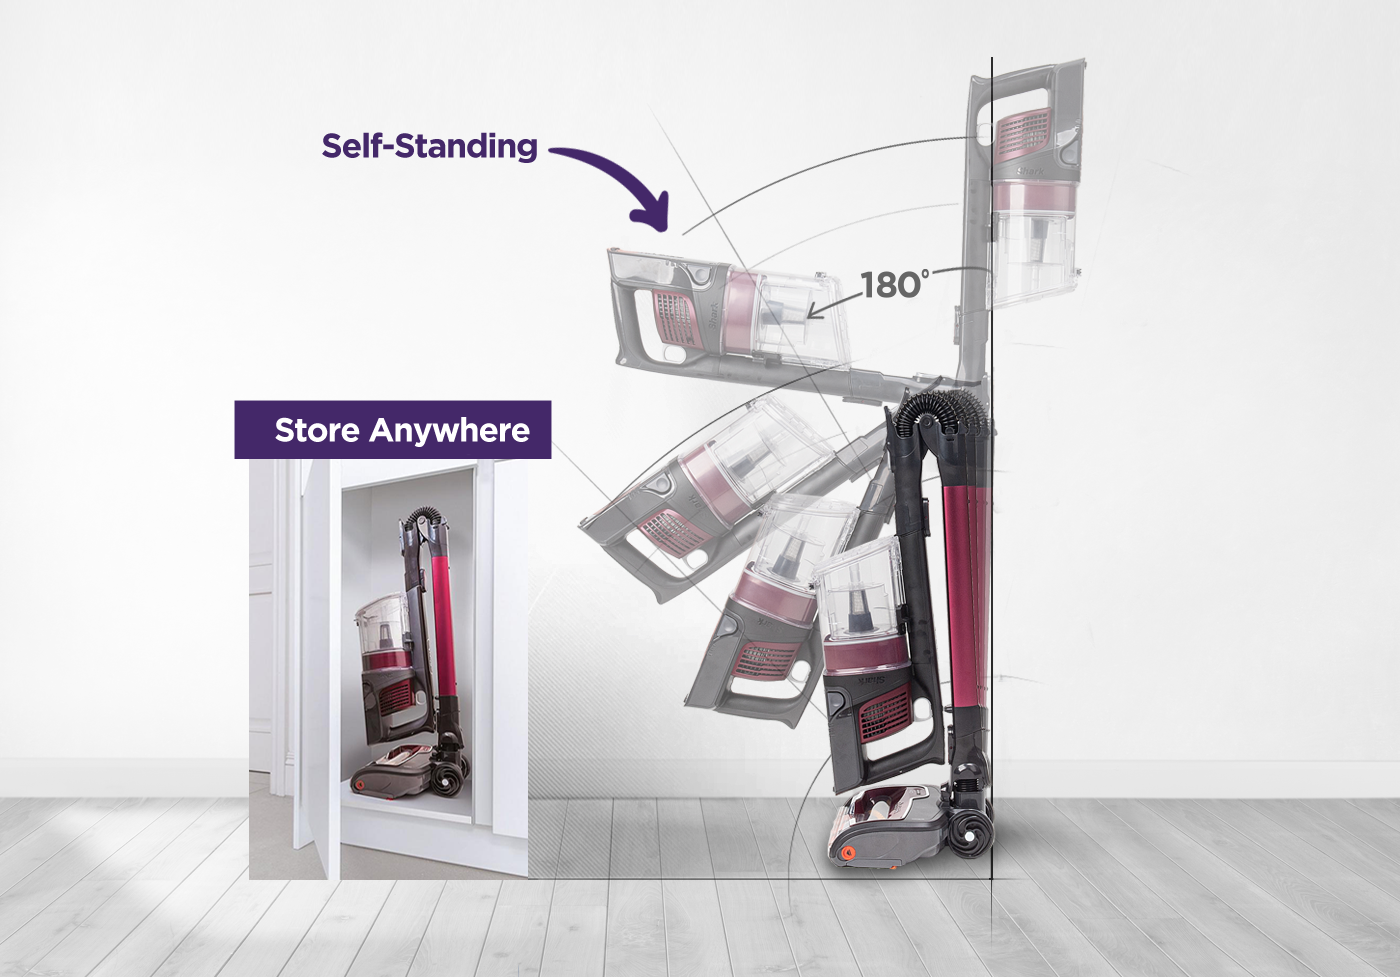 store anywhere - self-standing